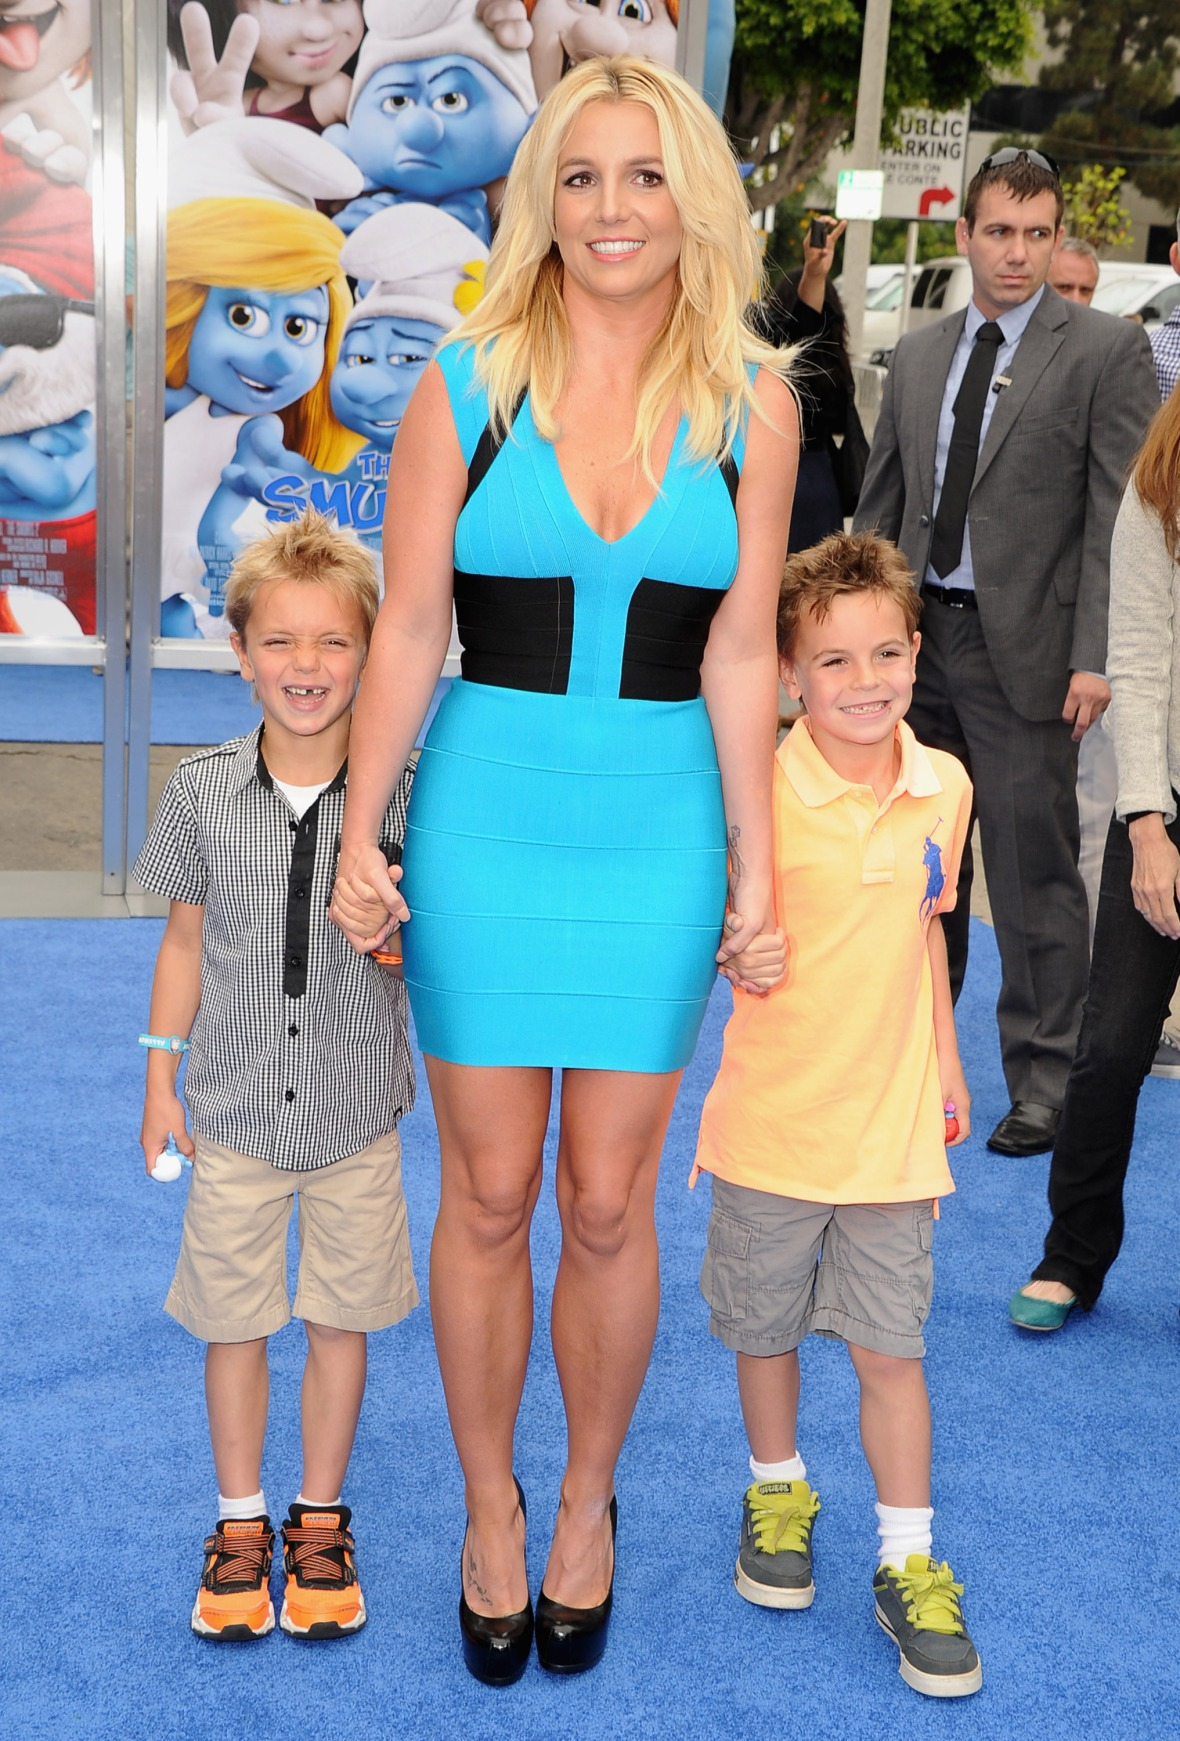 How Old Are Britney Spears' Kids? Find out More About ...